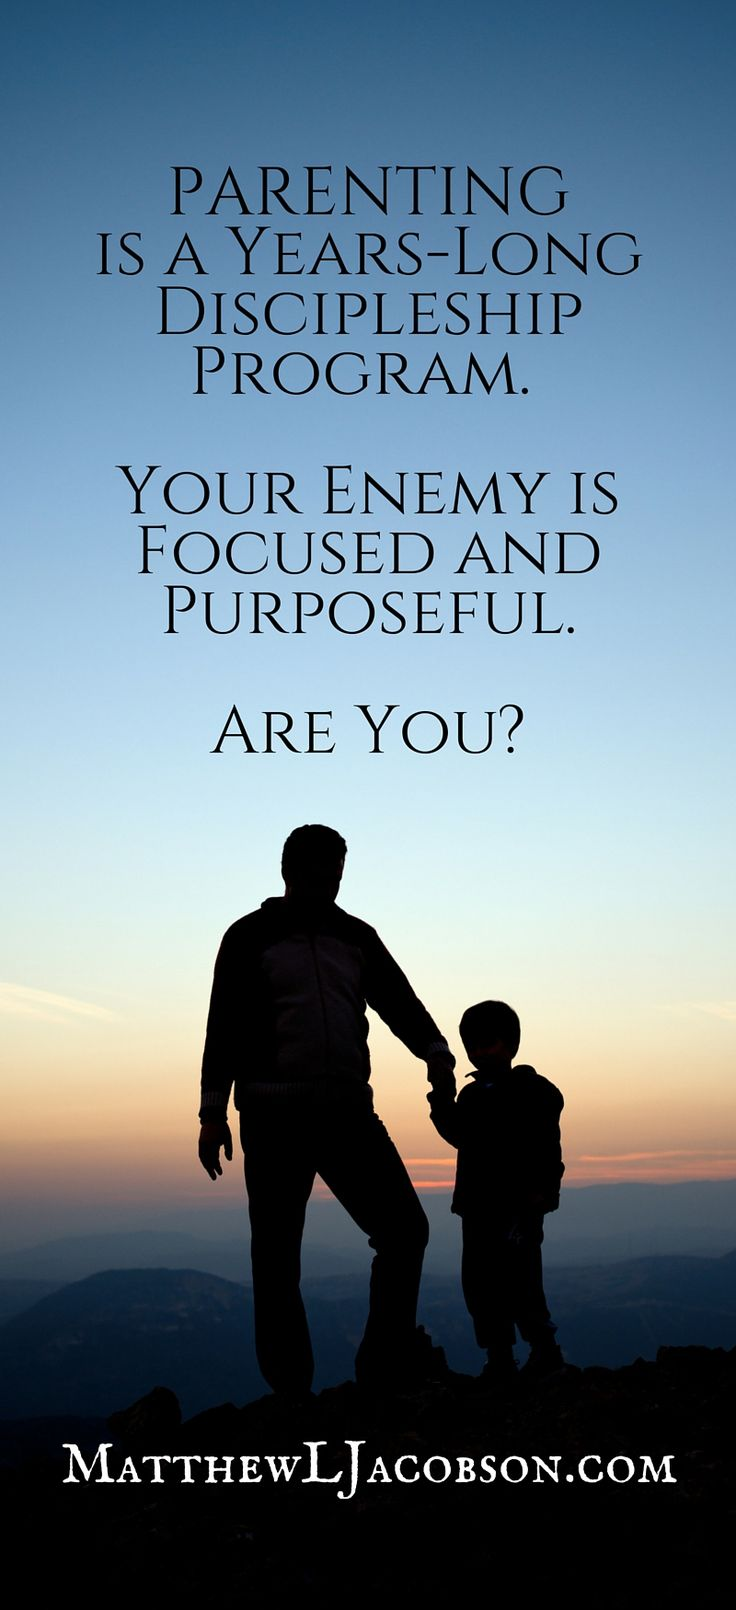 It's a busy life. How do parents train up their children in the way they should go? How do Christian parents lead their children to Jesus?